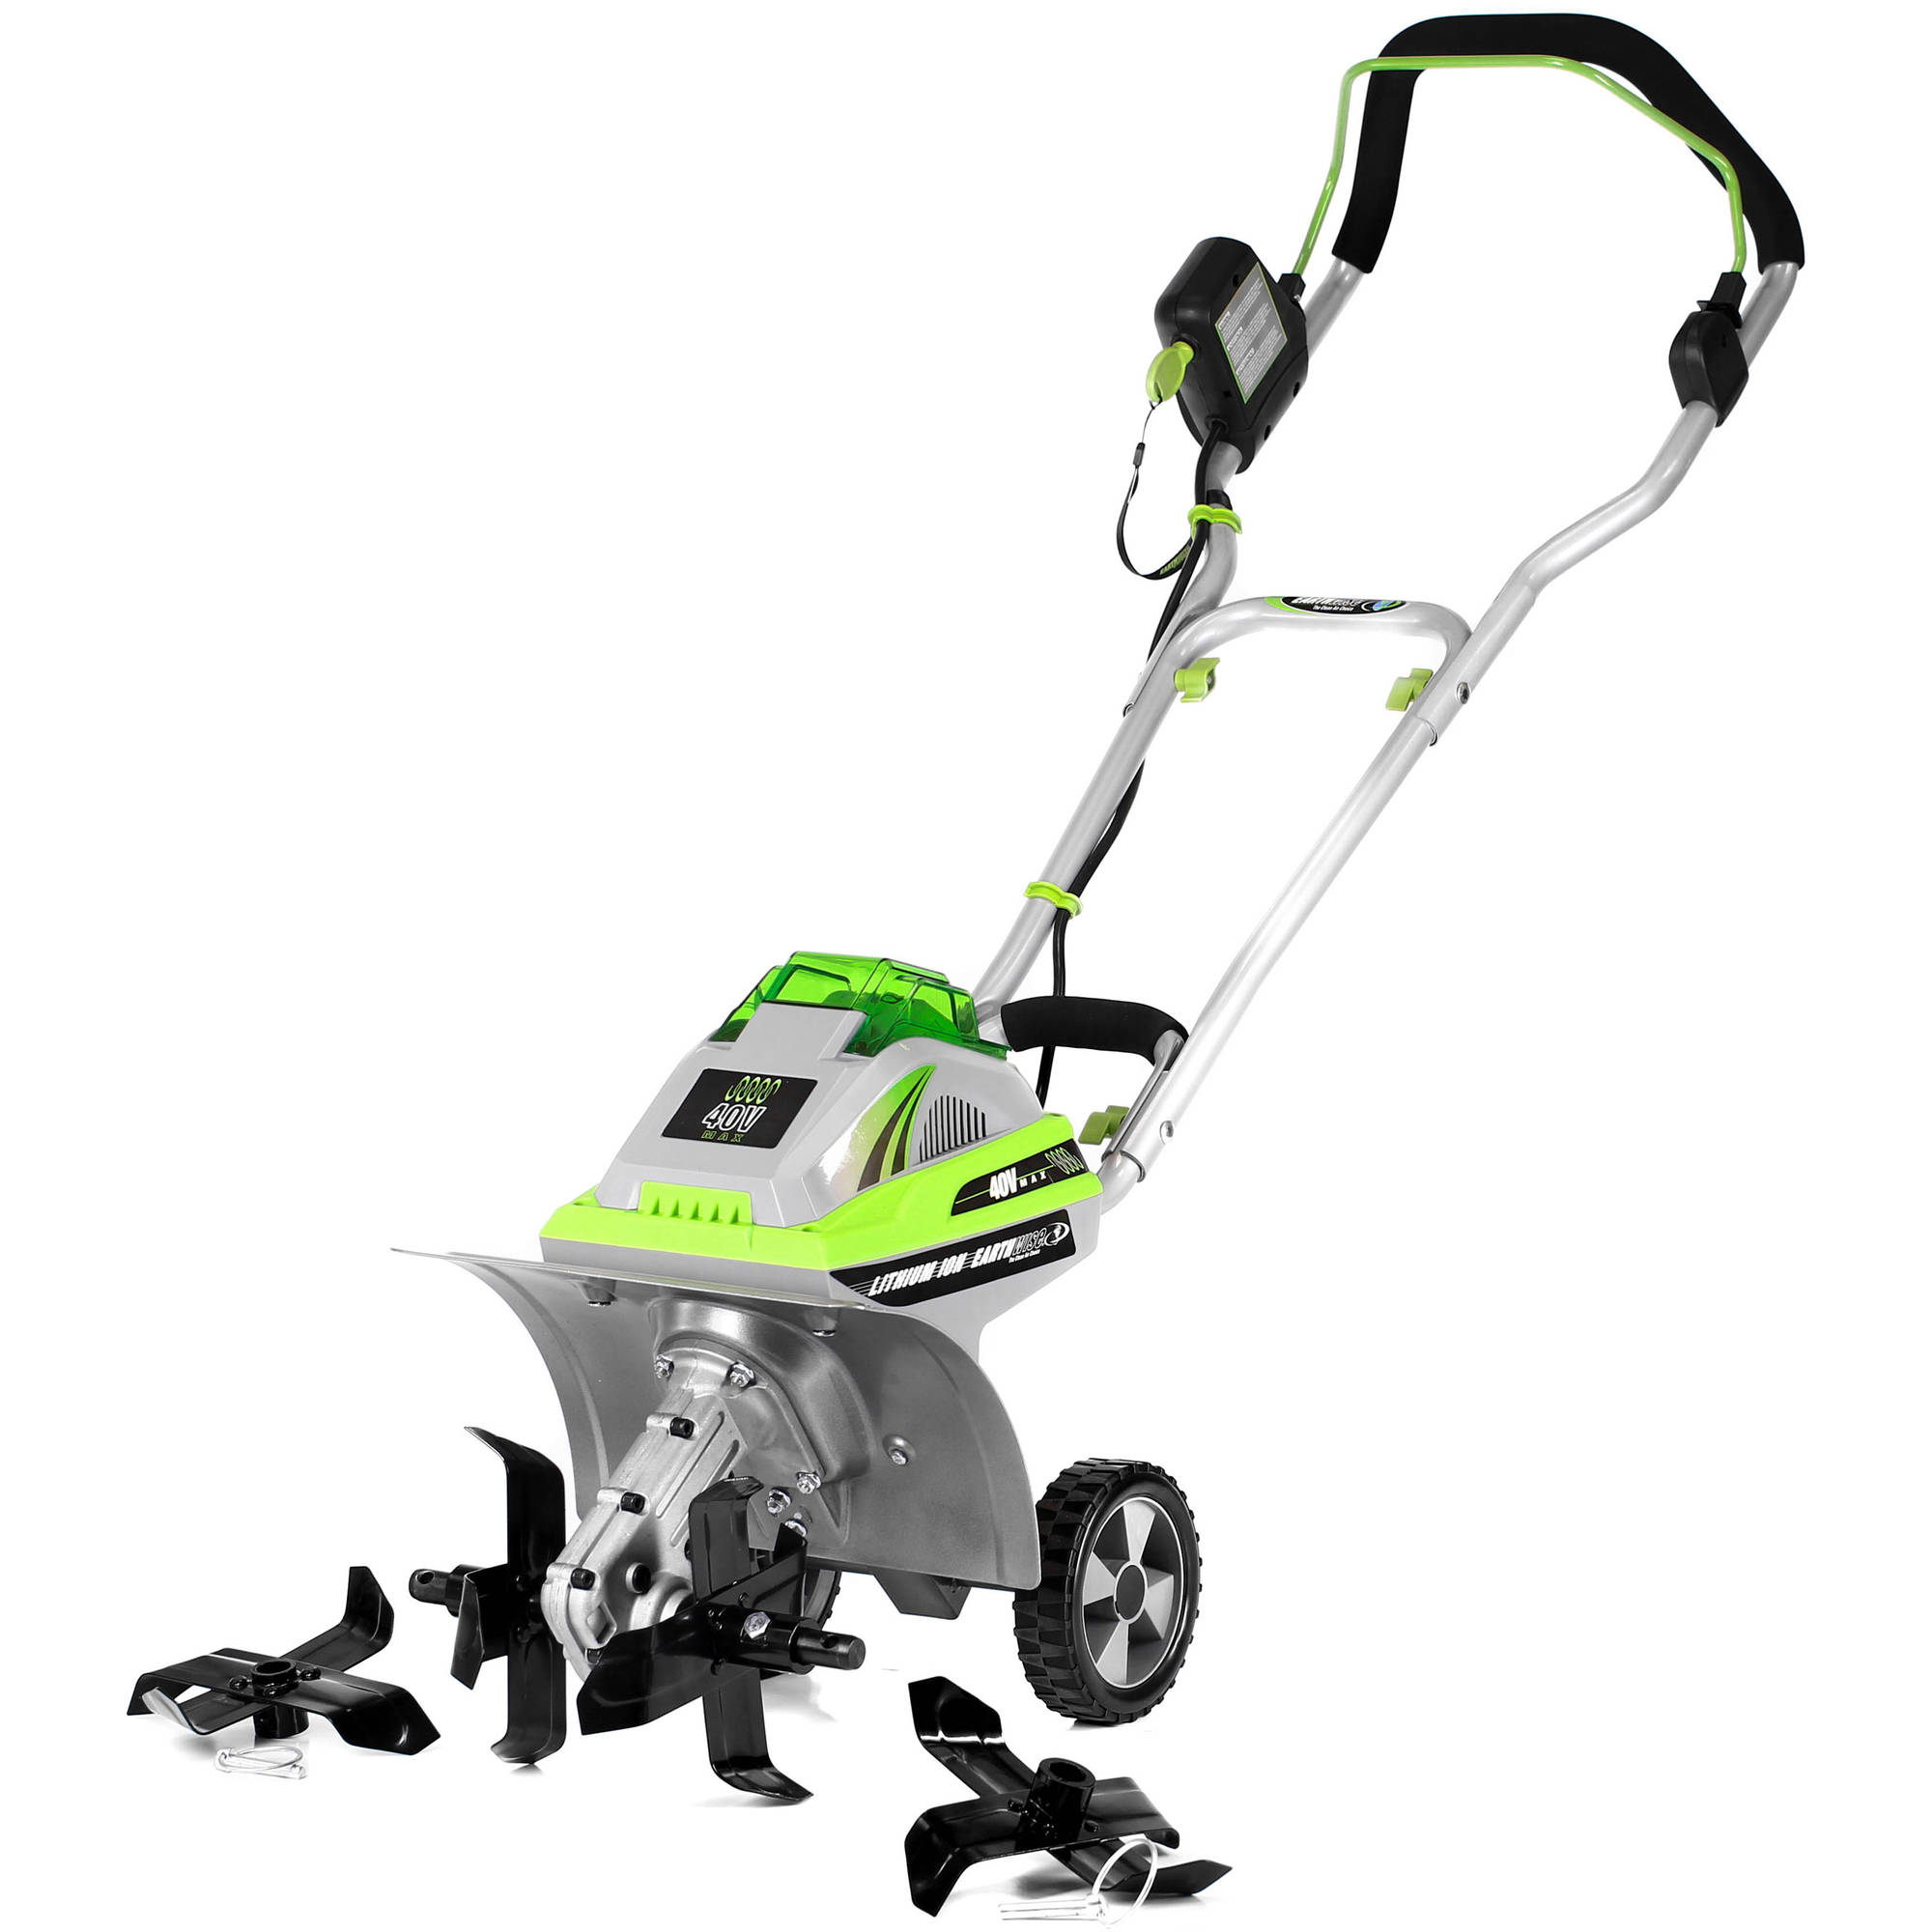 """Earthwise TC70040 11"""" 40 Volt Lithium Ion Cordless Electric Tiller/Cultivator with Adjustable Tines"""